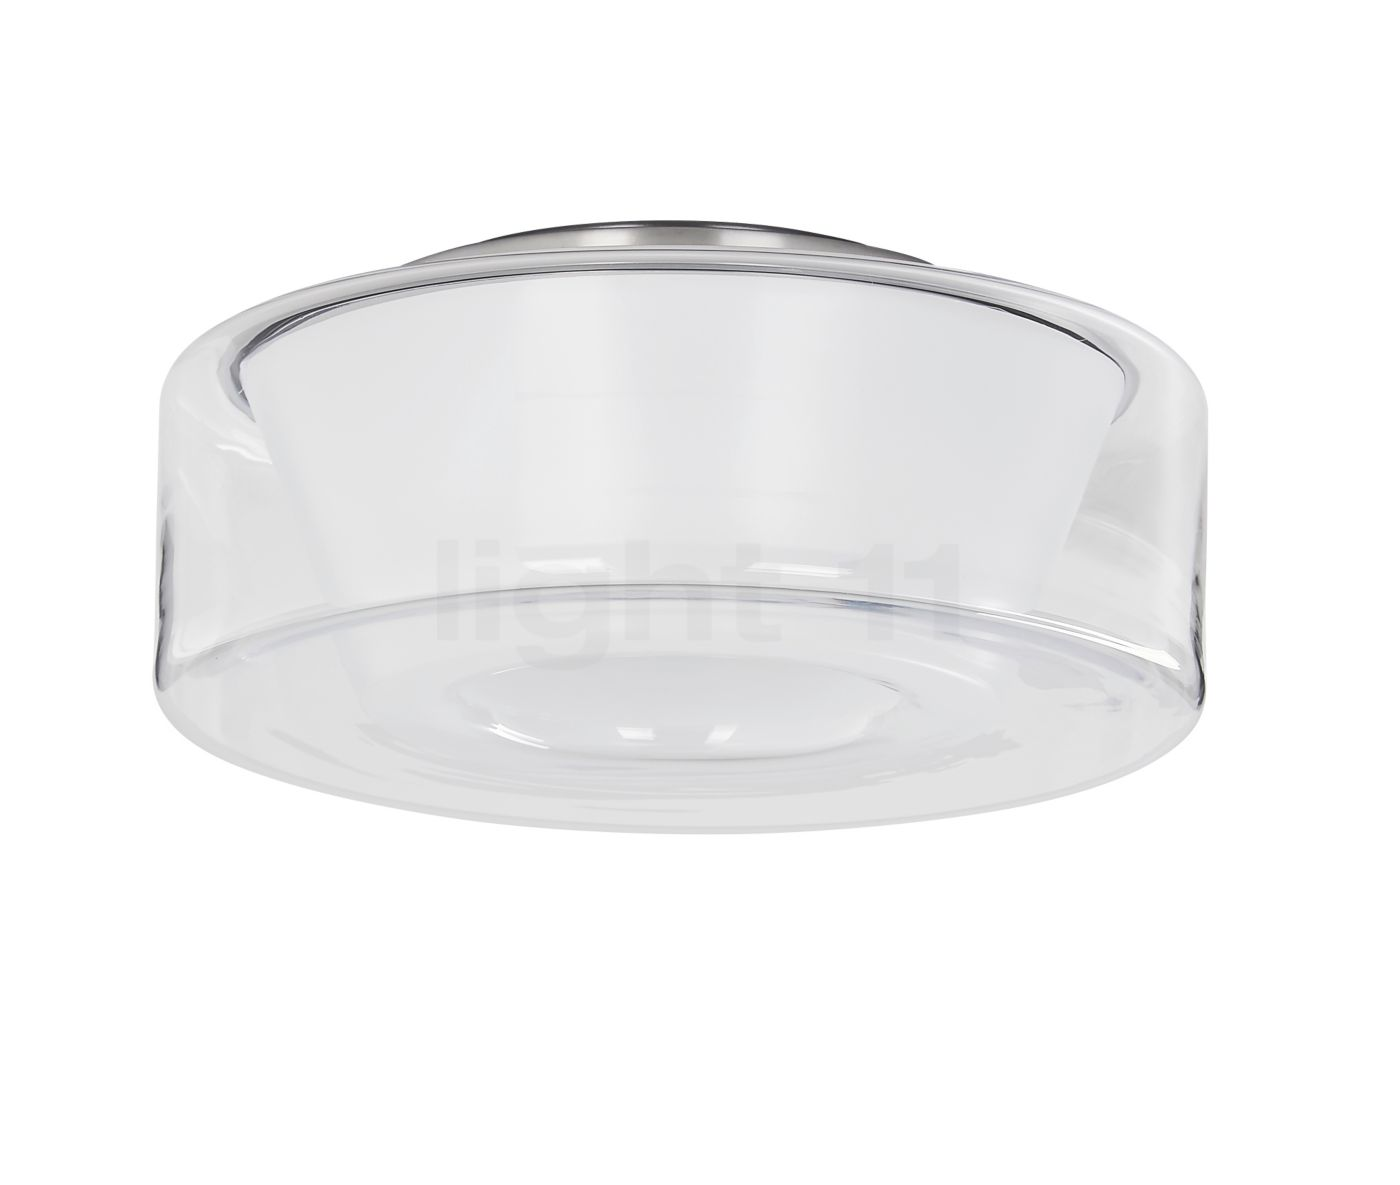 Serien lighting curling ceiling m led kaufen bei light11.de